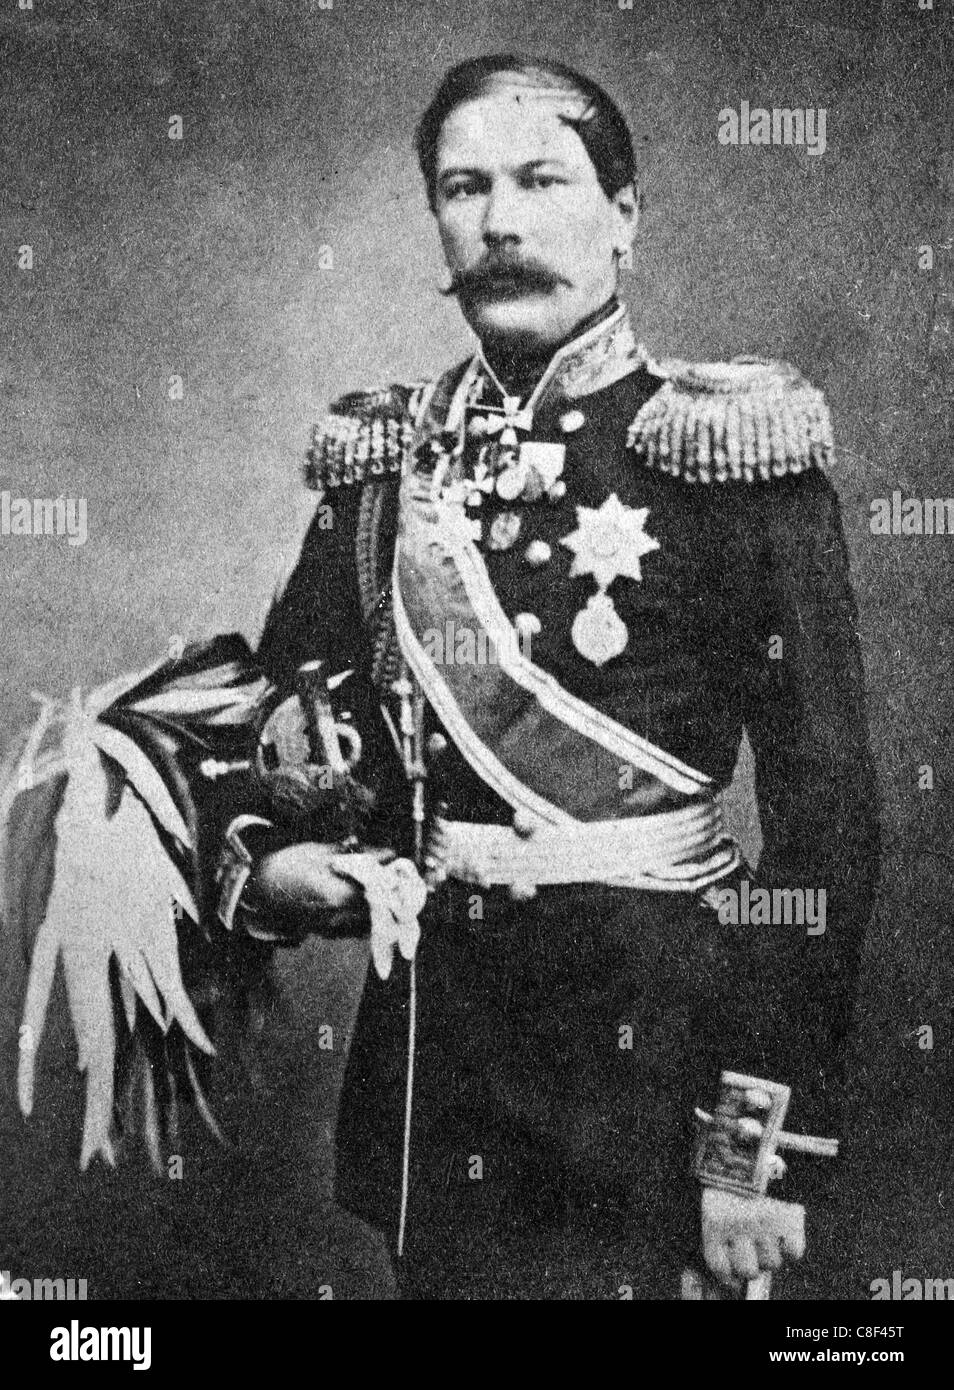 GENERAL EDUARD TOTLEBEN (1818-1884) Baltic German military engineer and general in the Imperial Russian Army - Stock Image